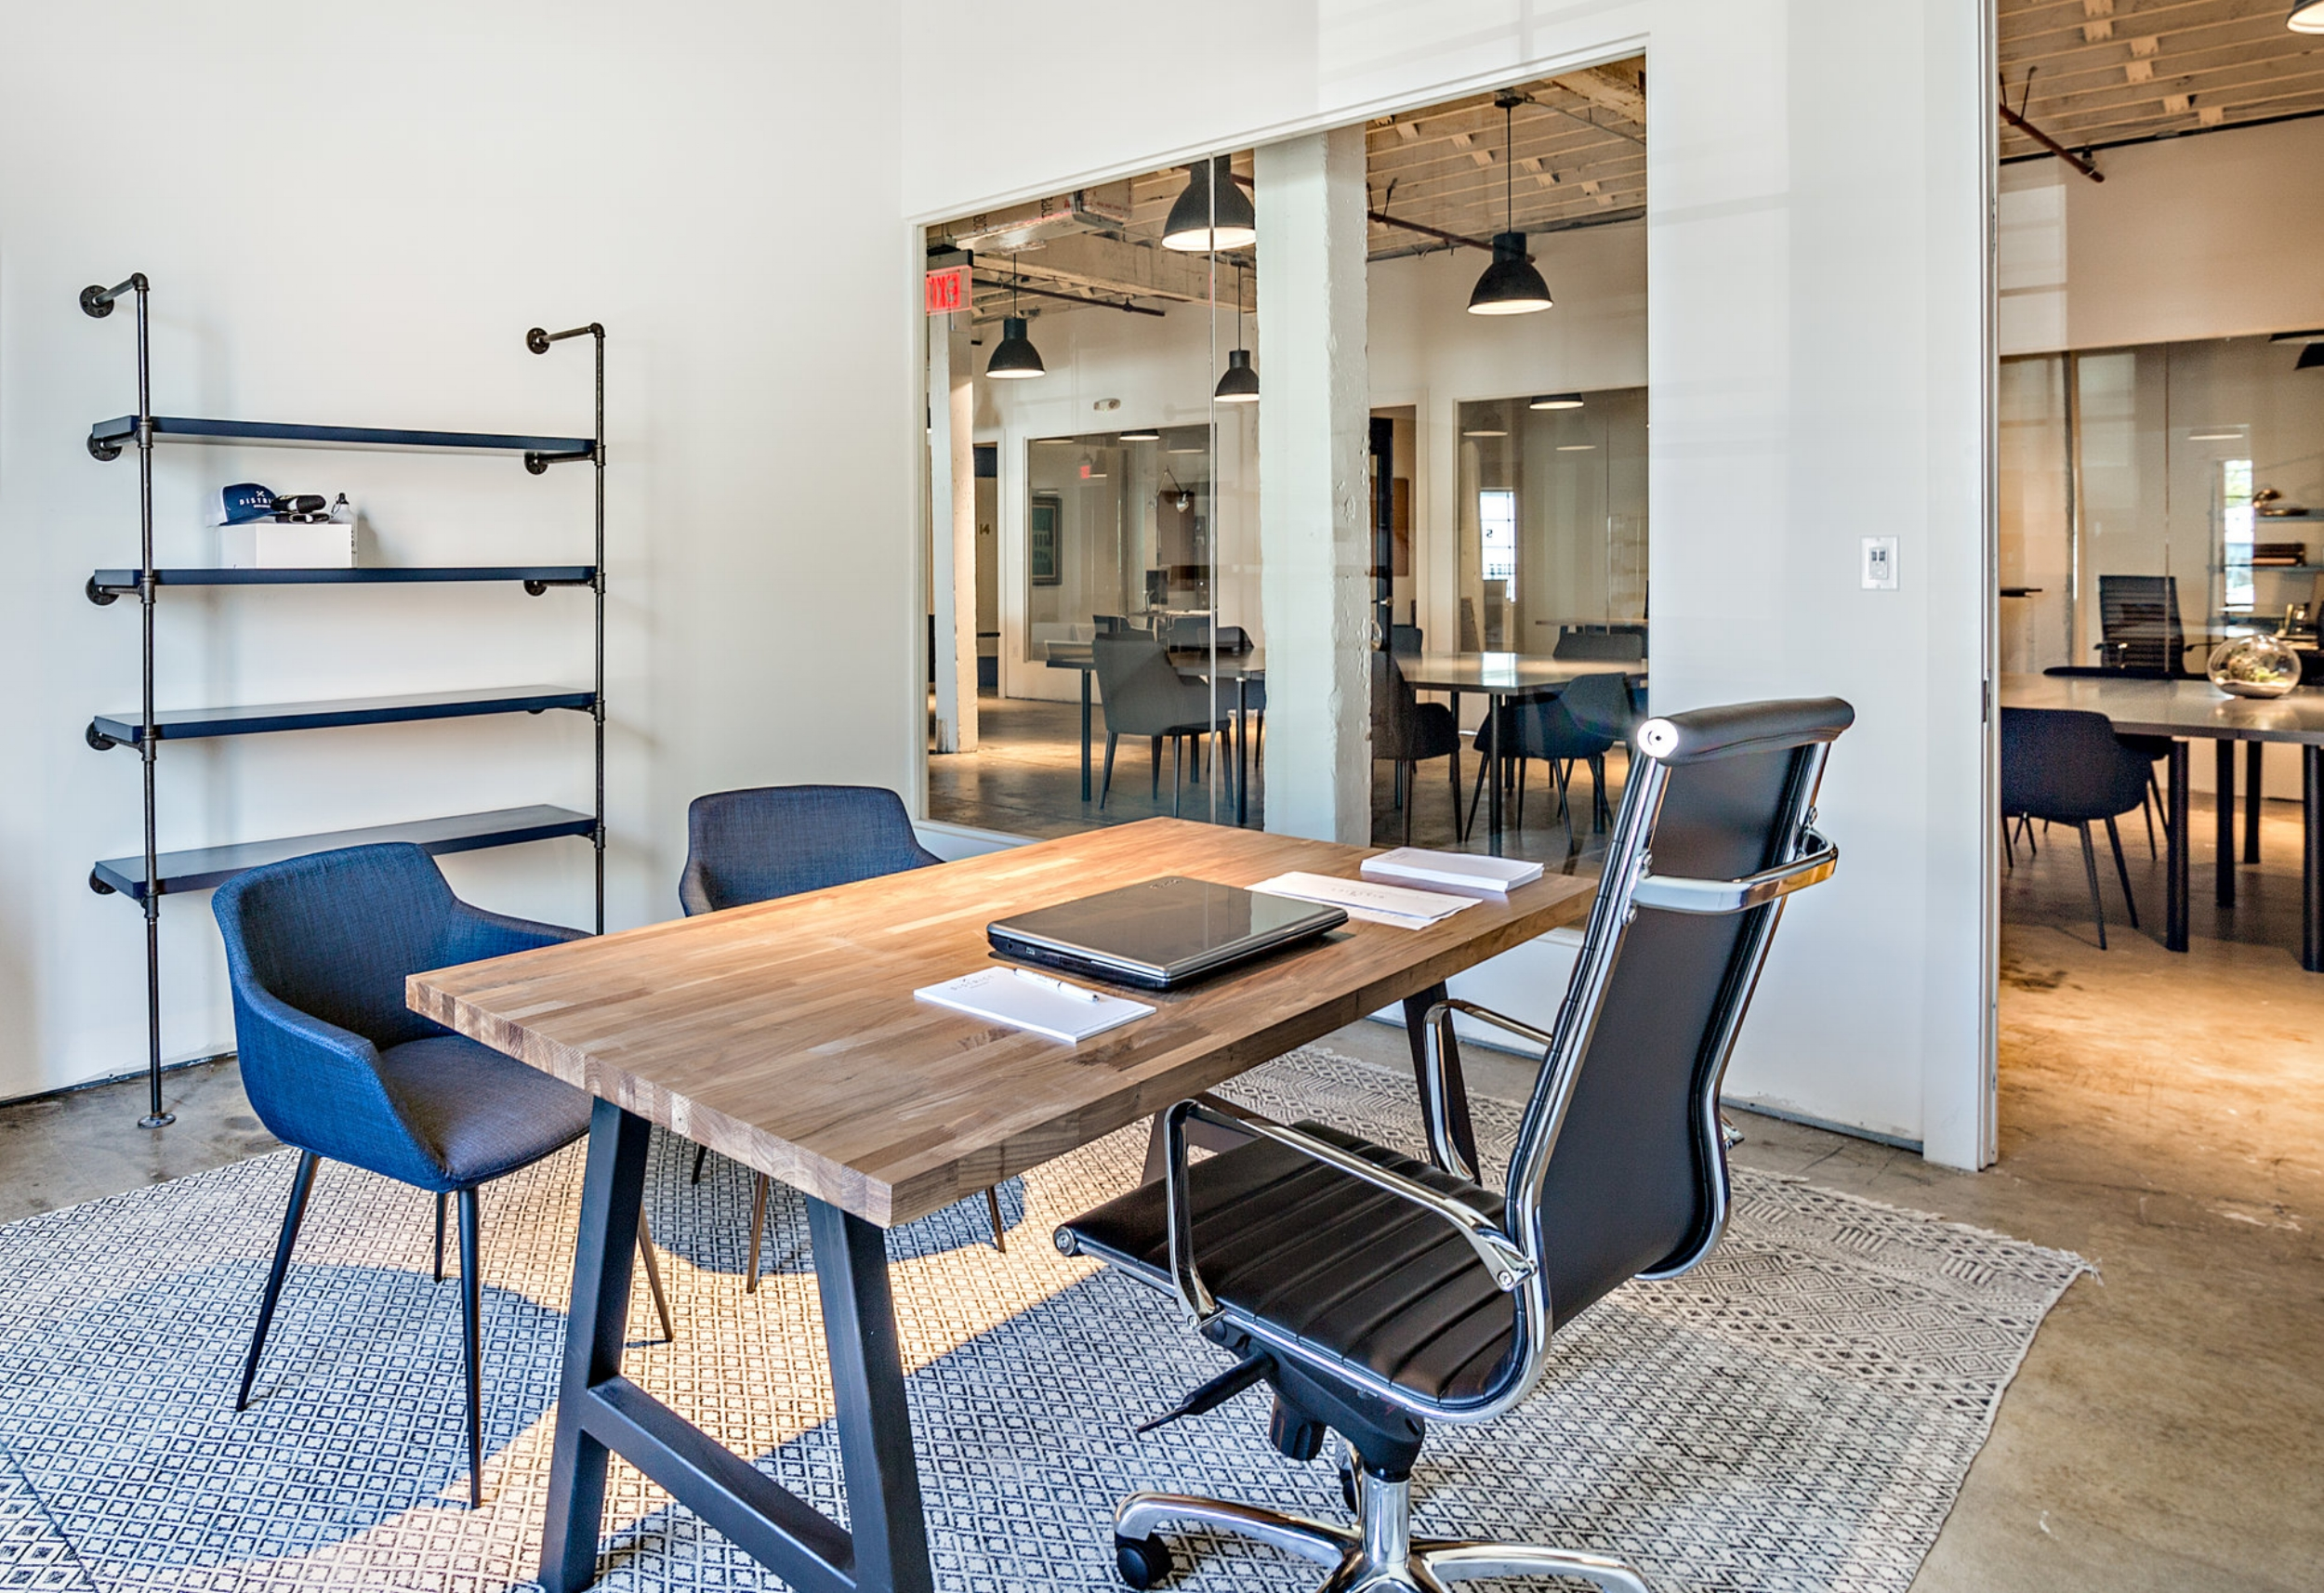 STARTING AT $1600/MONTHPrivate Office - Great for individuals or teams of 2-3 people. Each lockable space comes furnished and is fully-customizable. These offices provide the privacy desired to run your business and the bonus of a healthy work atmosphere.